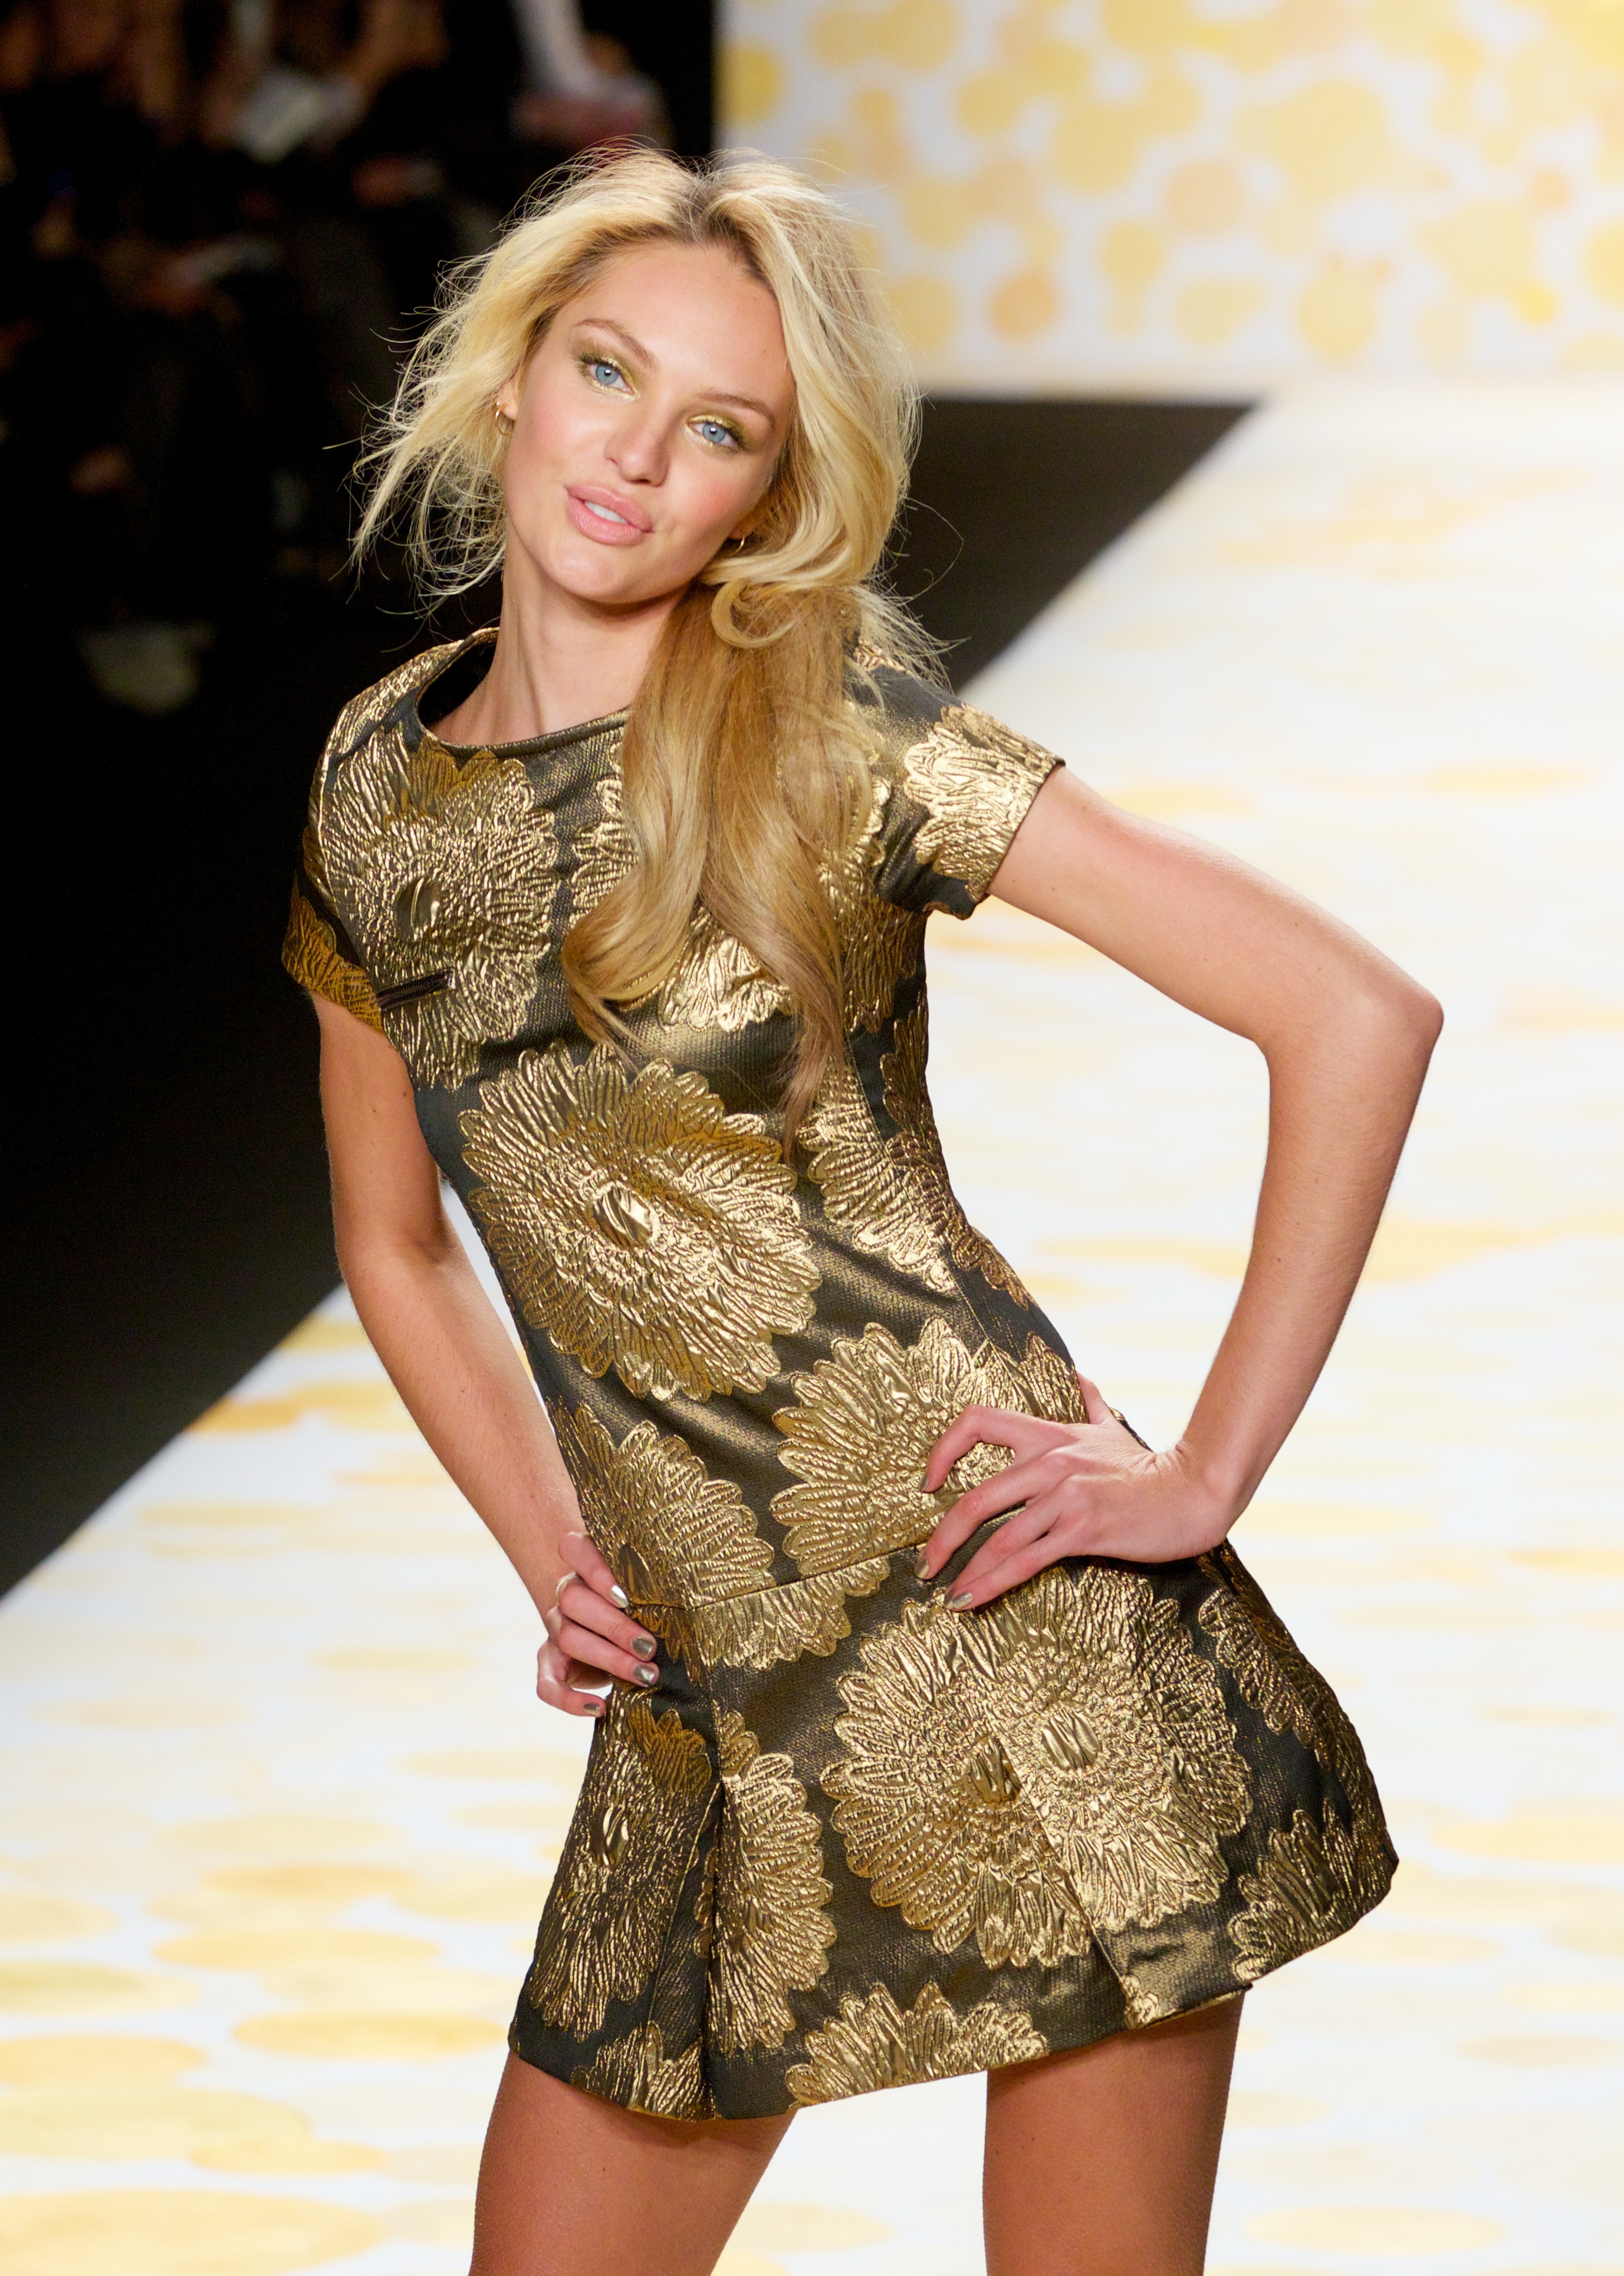 d3ccc562750 DESIGUAL Fashion Show at the Theater in Lincoln Center in New York City  Featuring  Candice